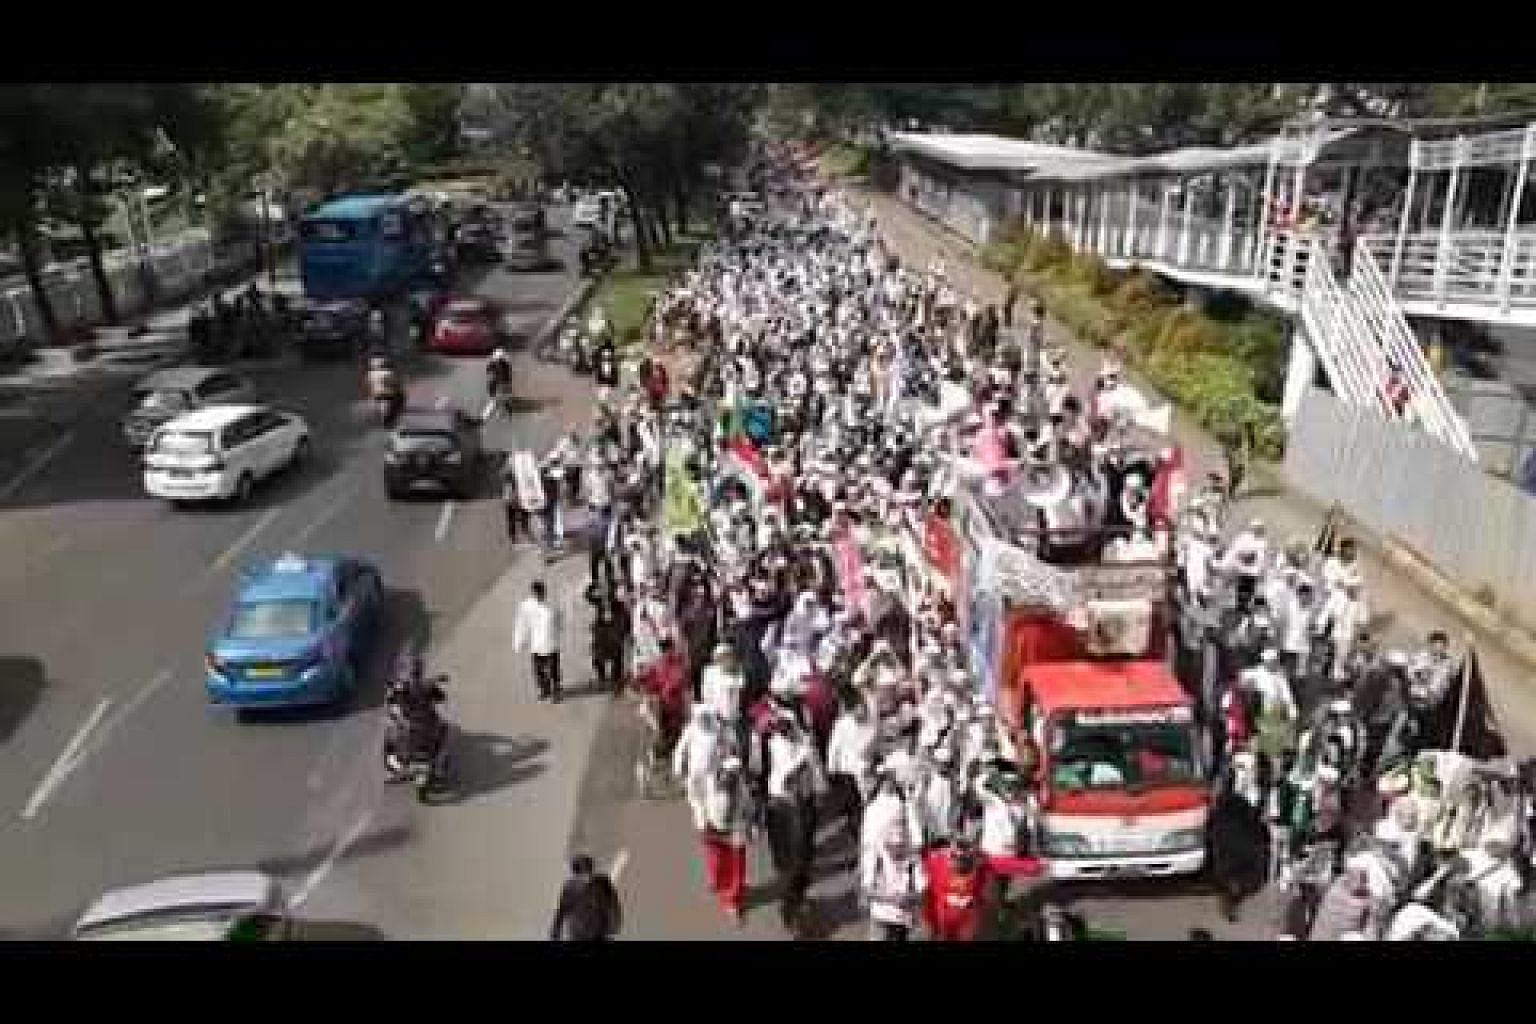 Protest street march in Jakarta